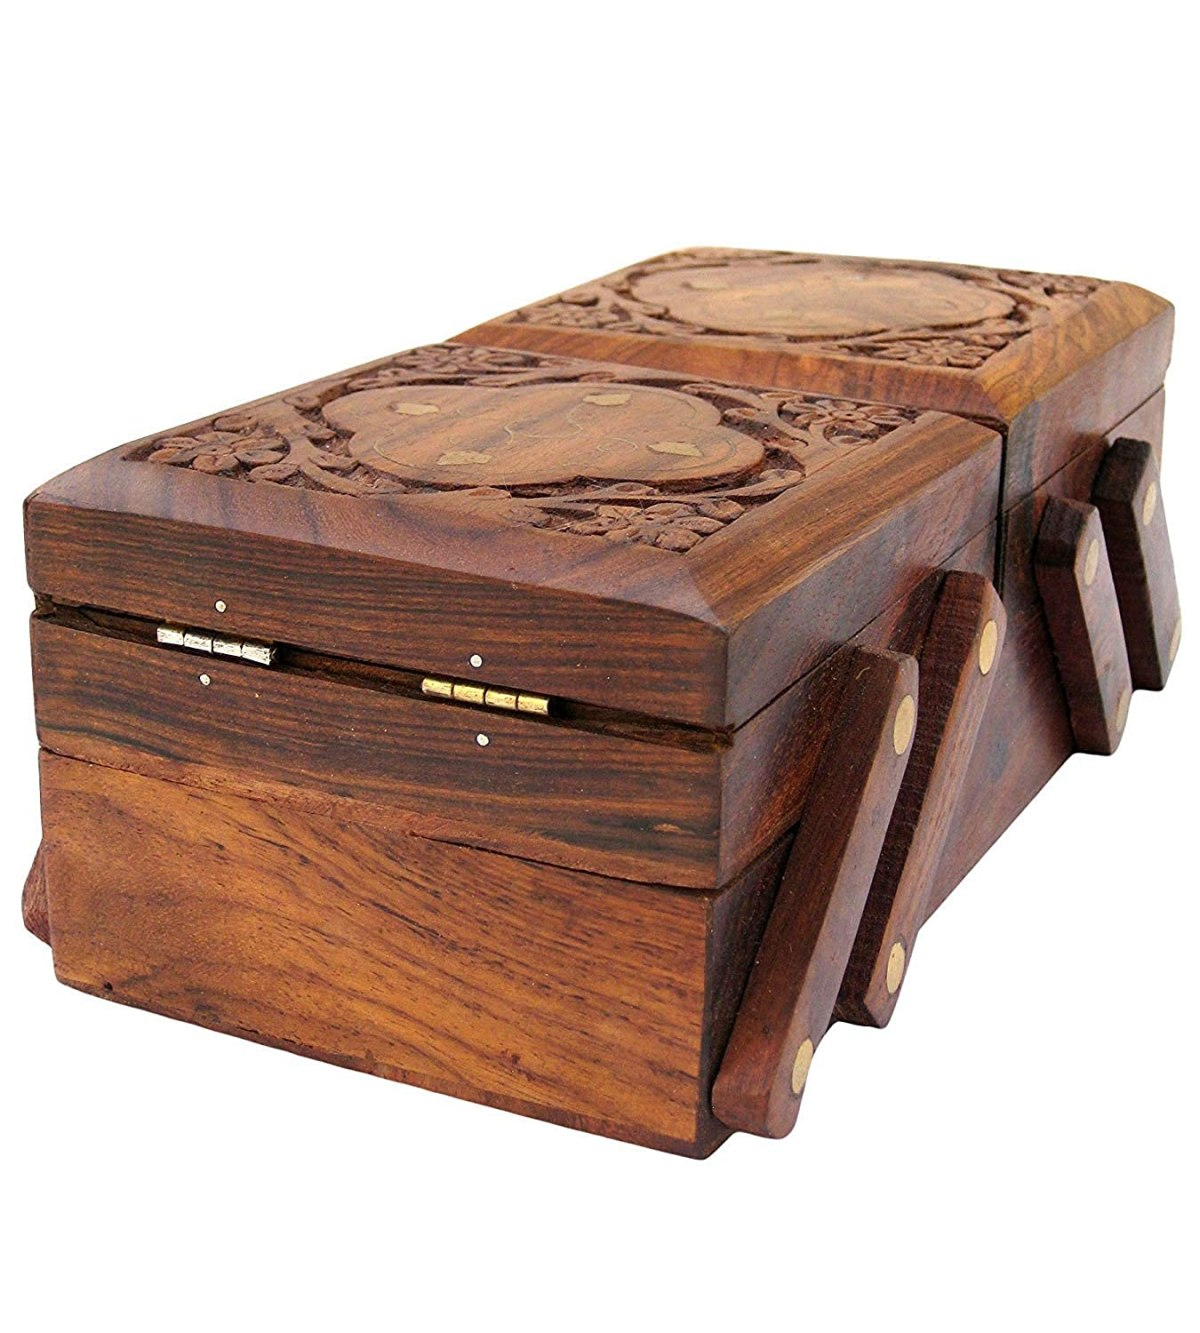 Jk Handicrafts Handmade Wooden Jewellery Box for Women Jewel Organizer Hand Carved Carvings Gift Items